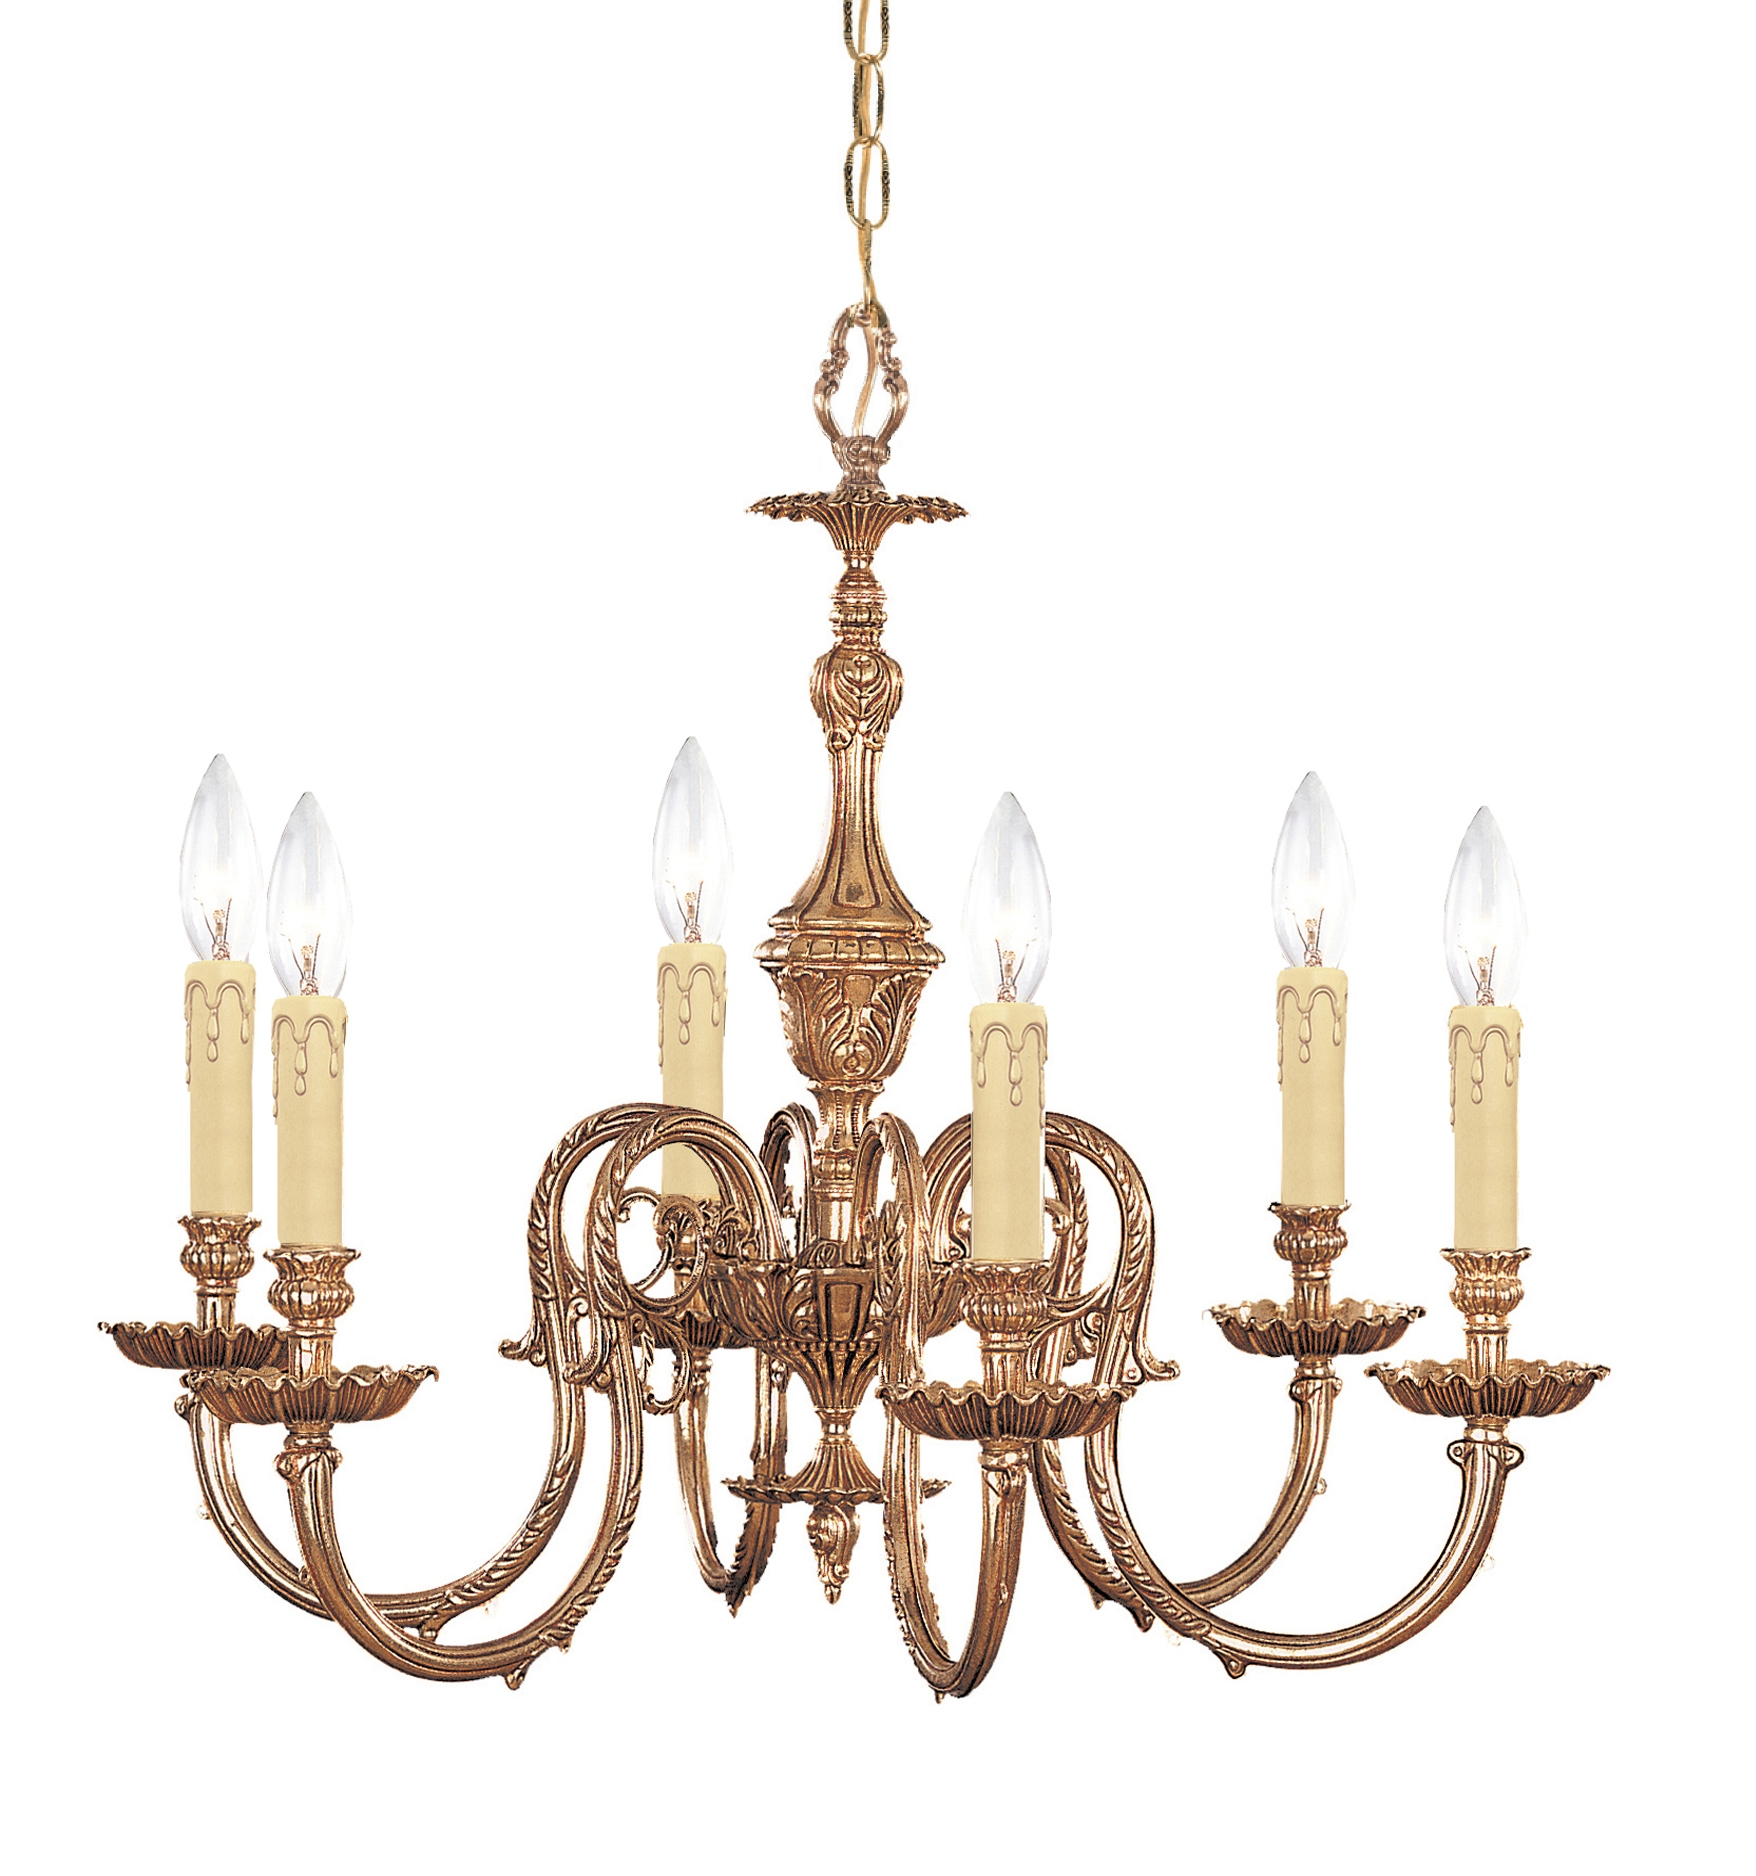 12 best ideas of ornate chandeliers crystorama 2606 ob dining foyer chandeliers novella intended for ornate chandeliers 6 of 12 aloadofball Choice Image